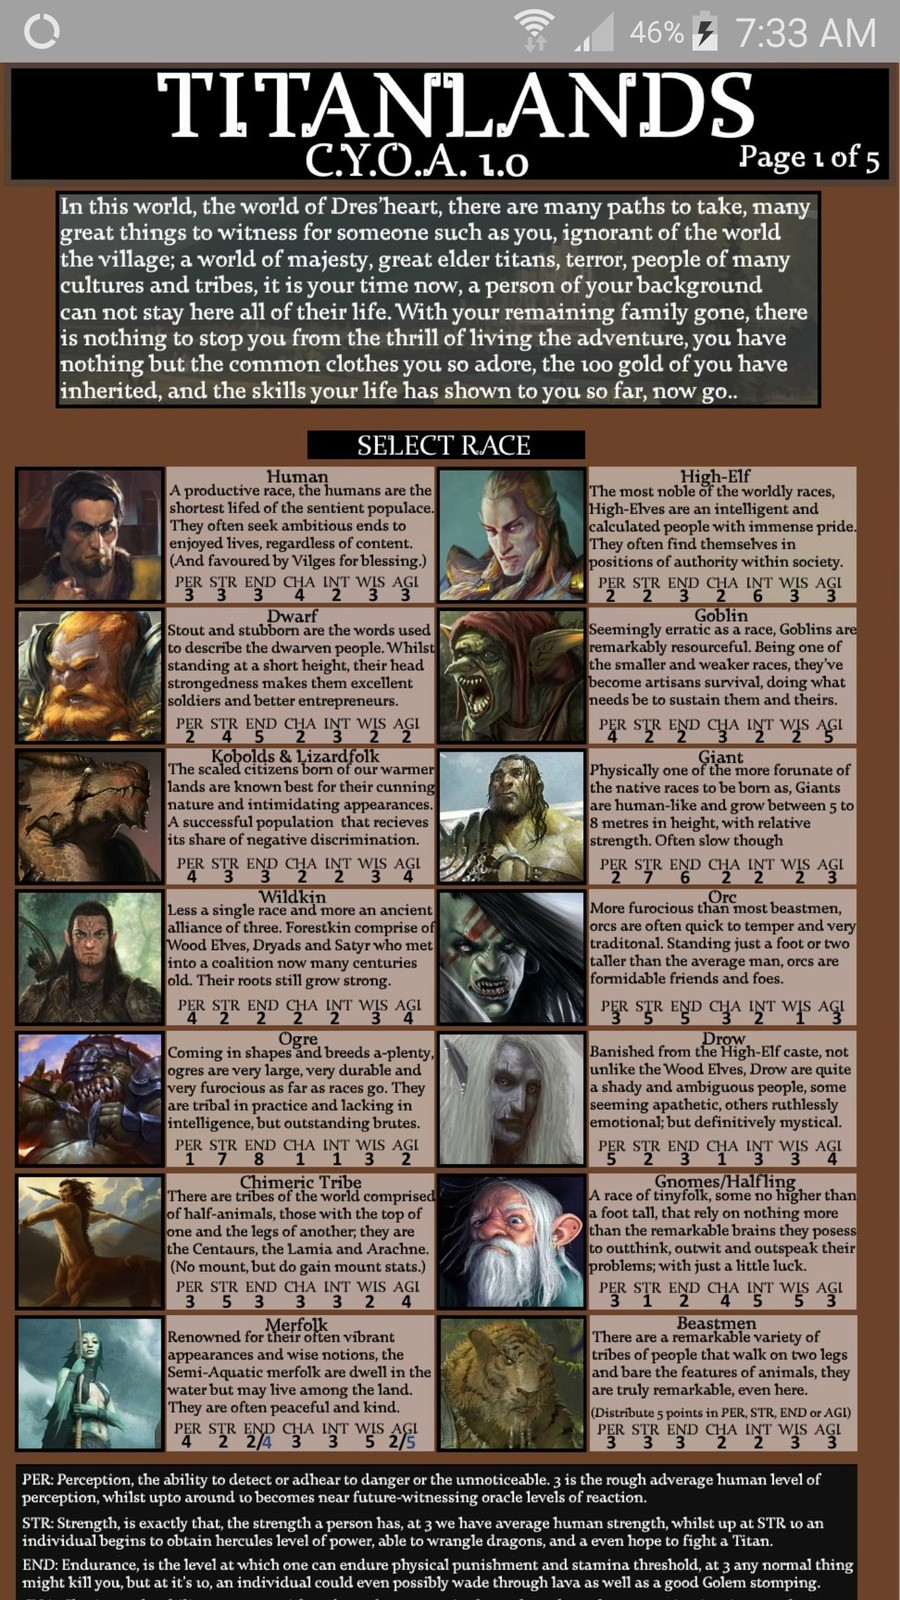 Titanlands CYOA. . T T. ANL. ANDS In this world, the world of Darkheart, there are many paths to take, many great things to witness for someone such as you, ign